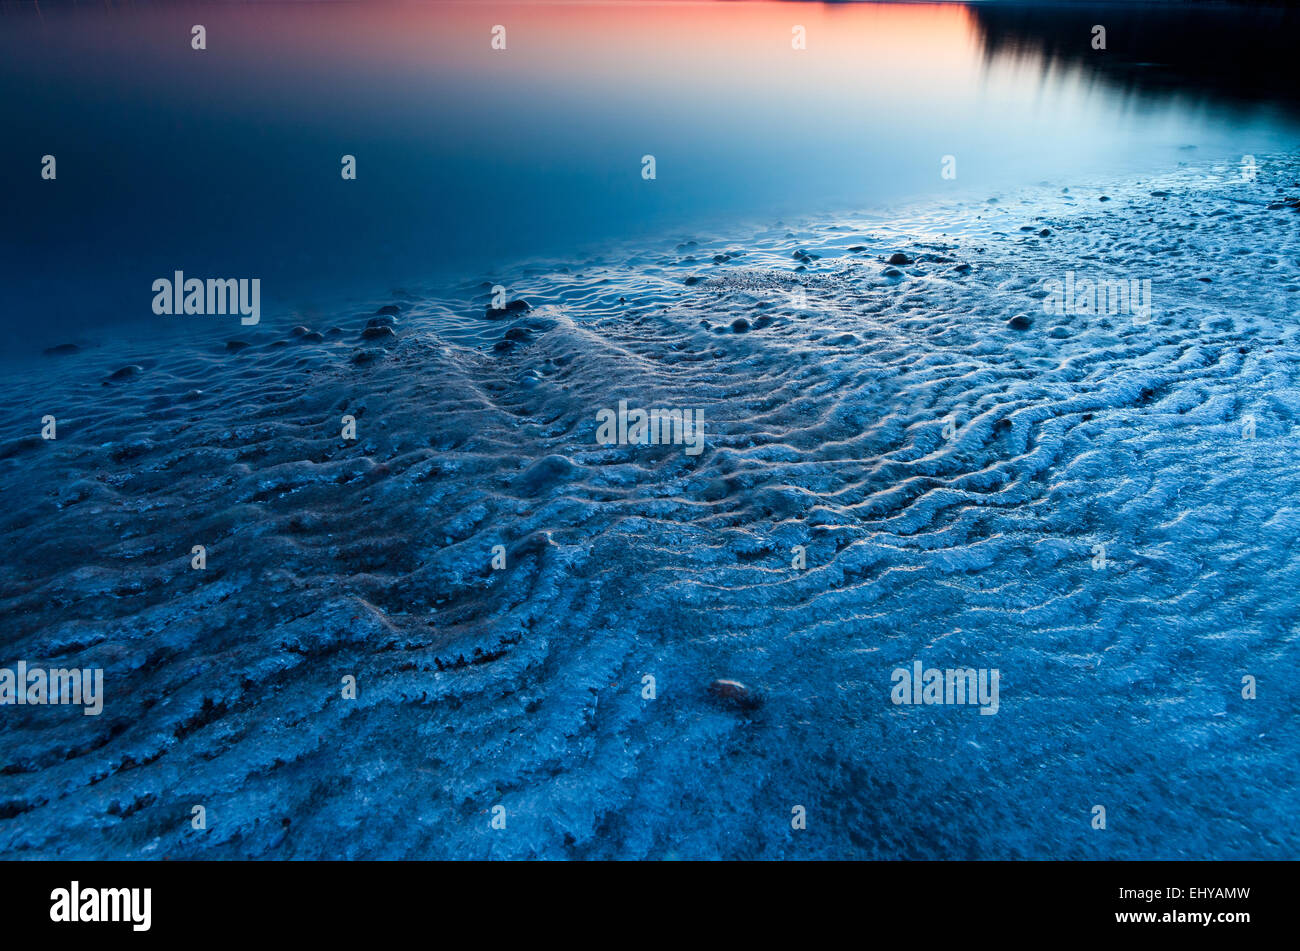 Kalte Winter Abend am Strand von Backofen in Råde Kommune,, Østfold fylke Rogaland, Norwegen. Stockfoto